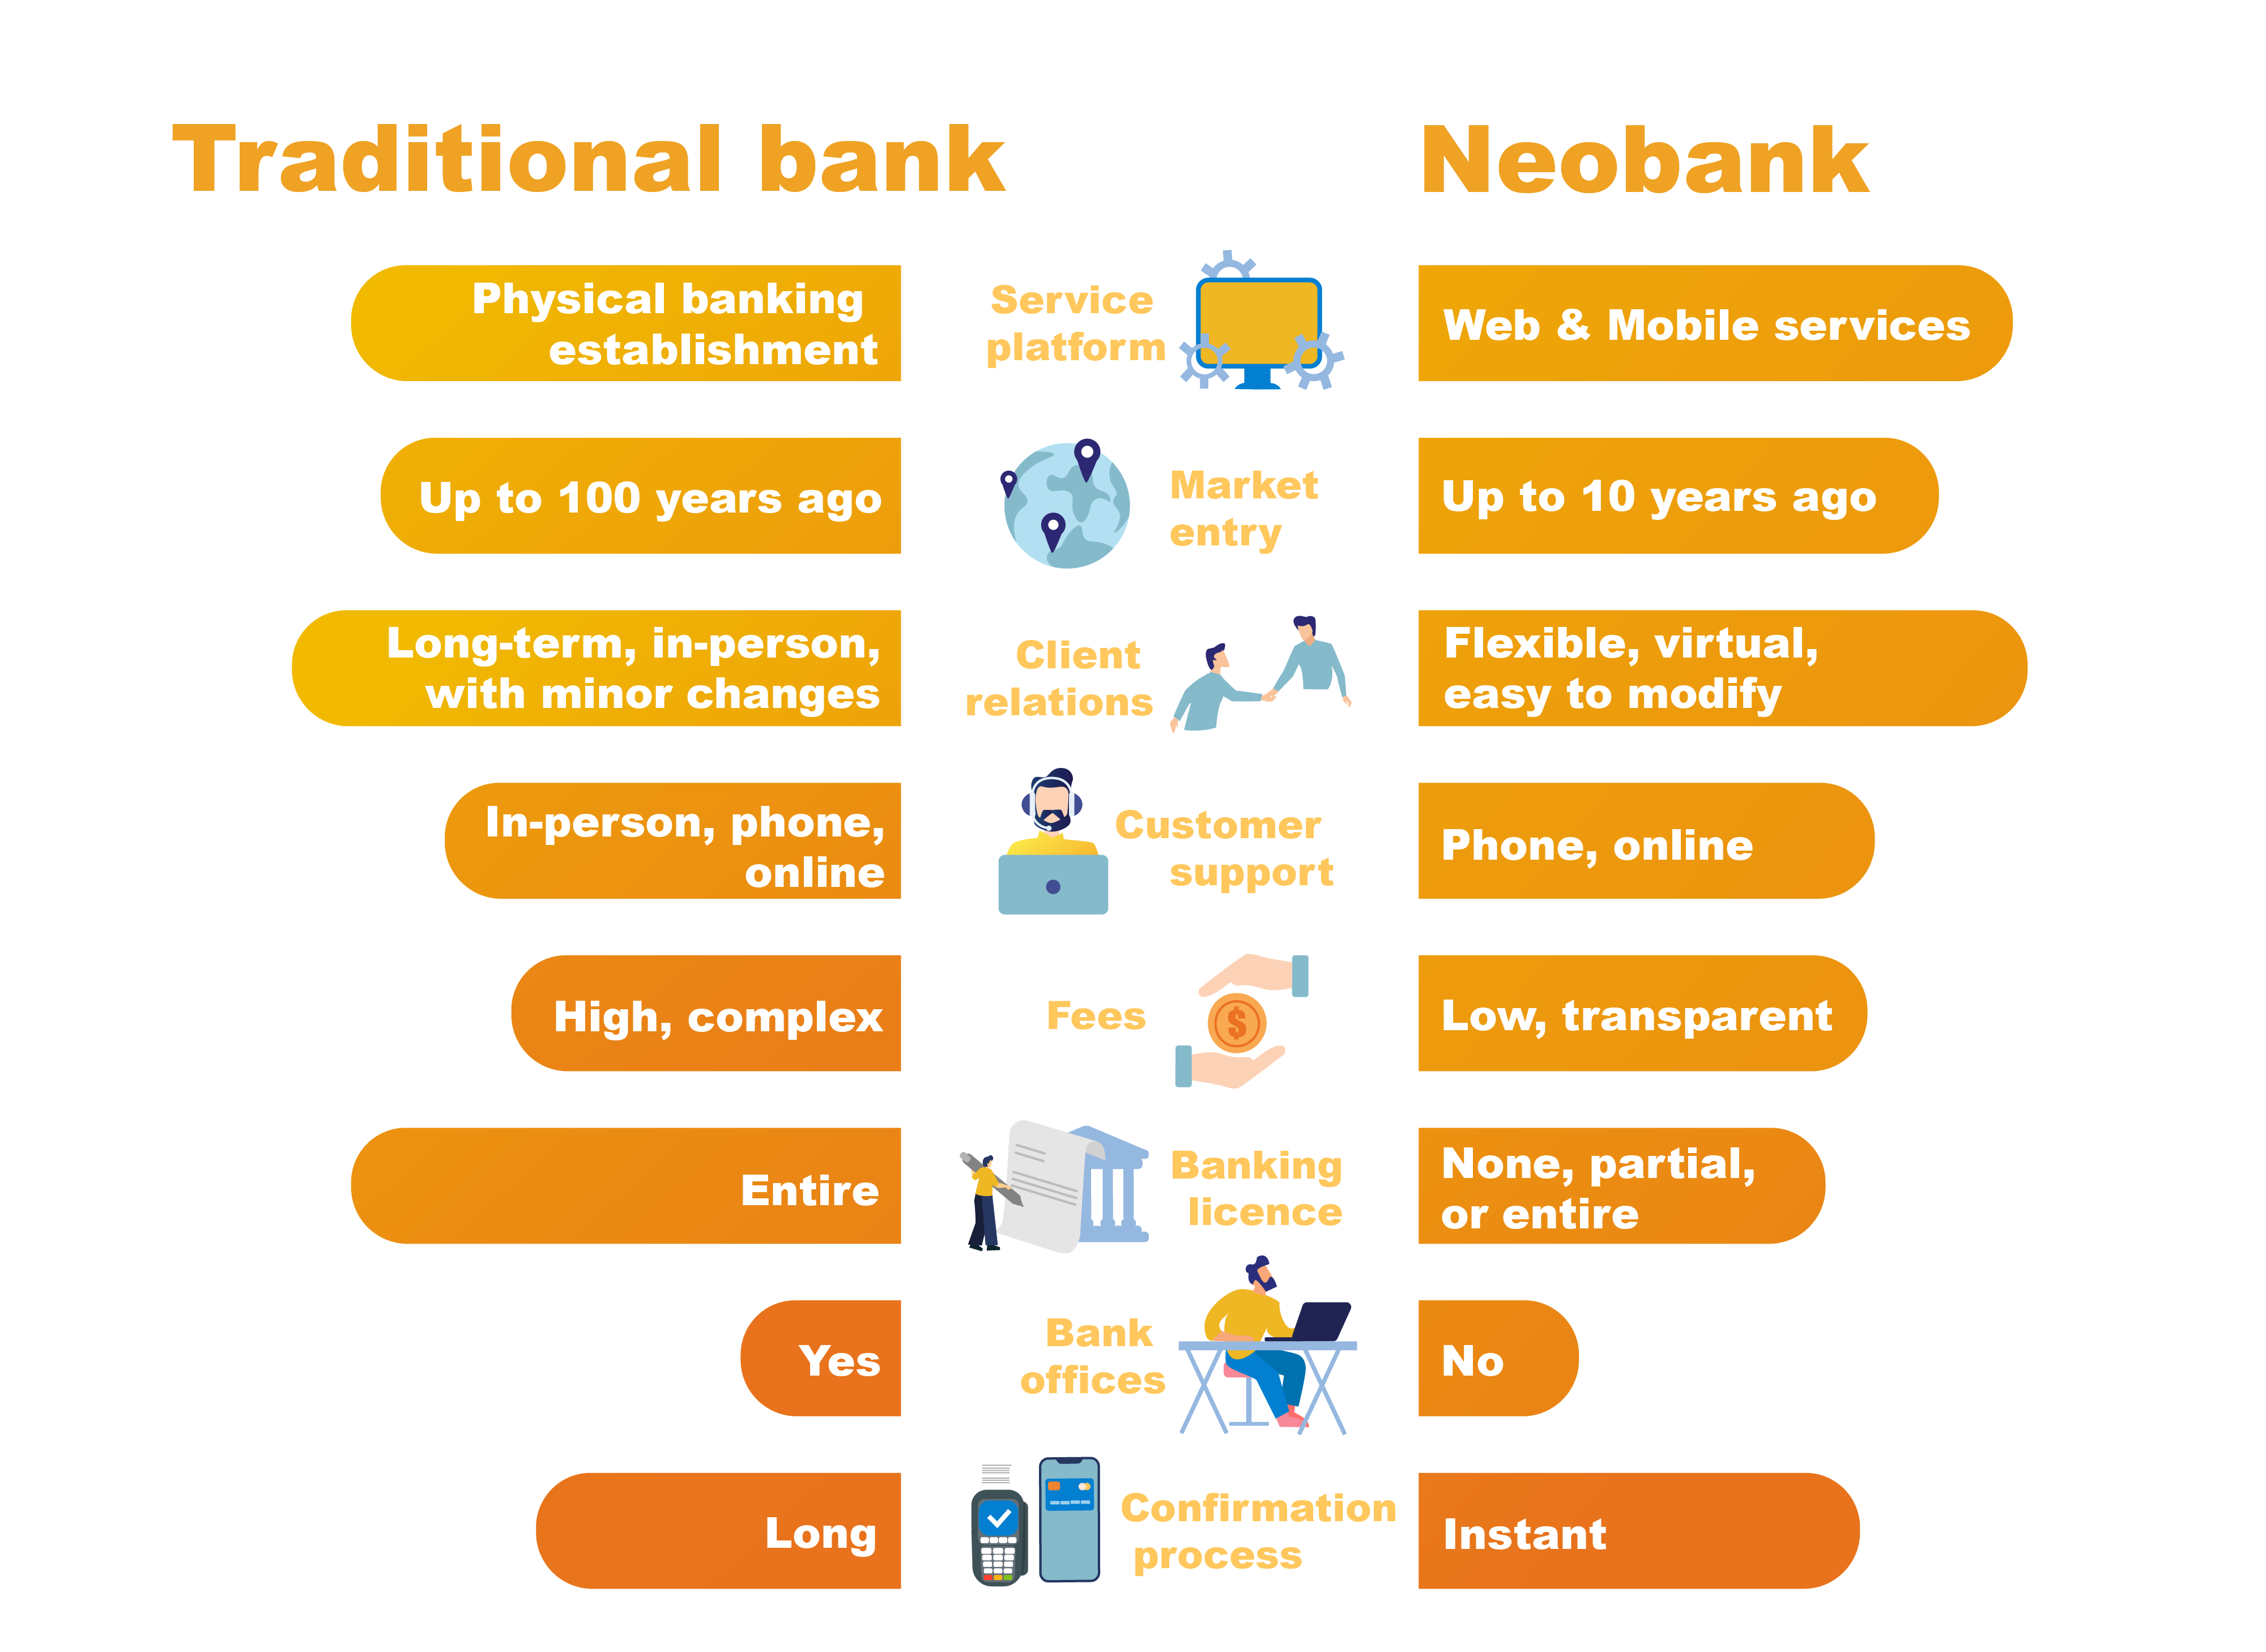 Comparison of neobank and traditional bank